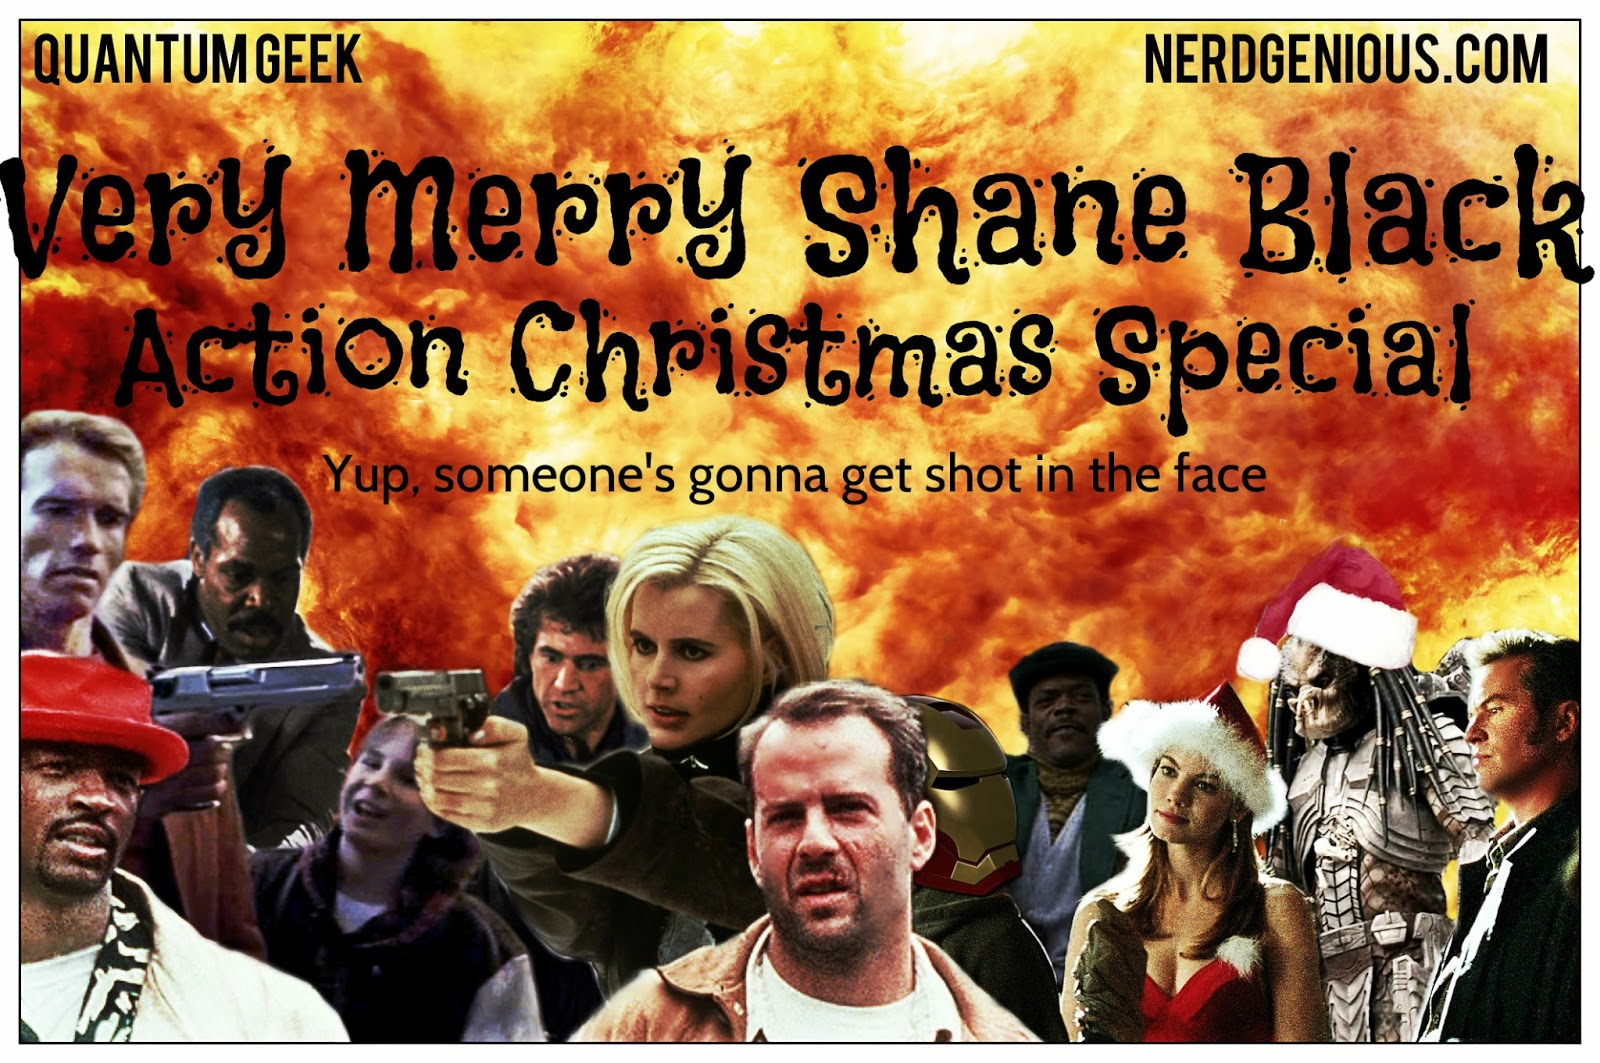 Podcast series celebrating the movies of actor, writer and director Shane Black